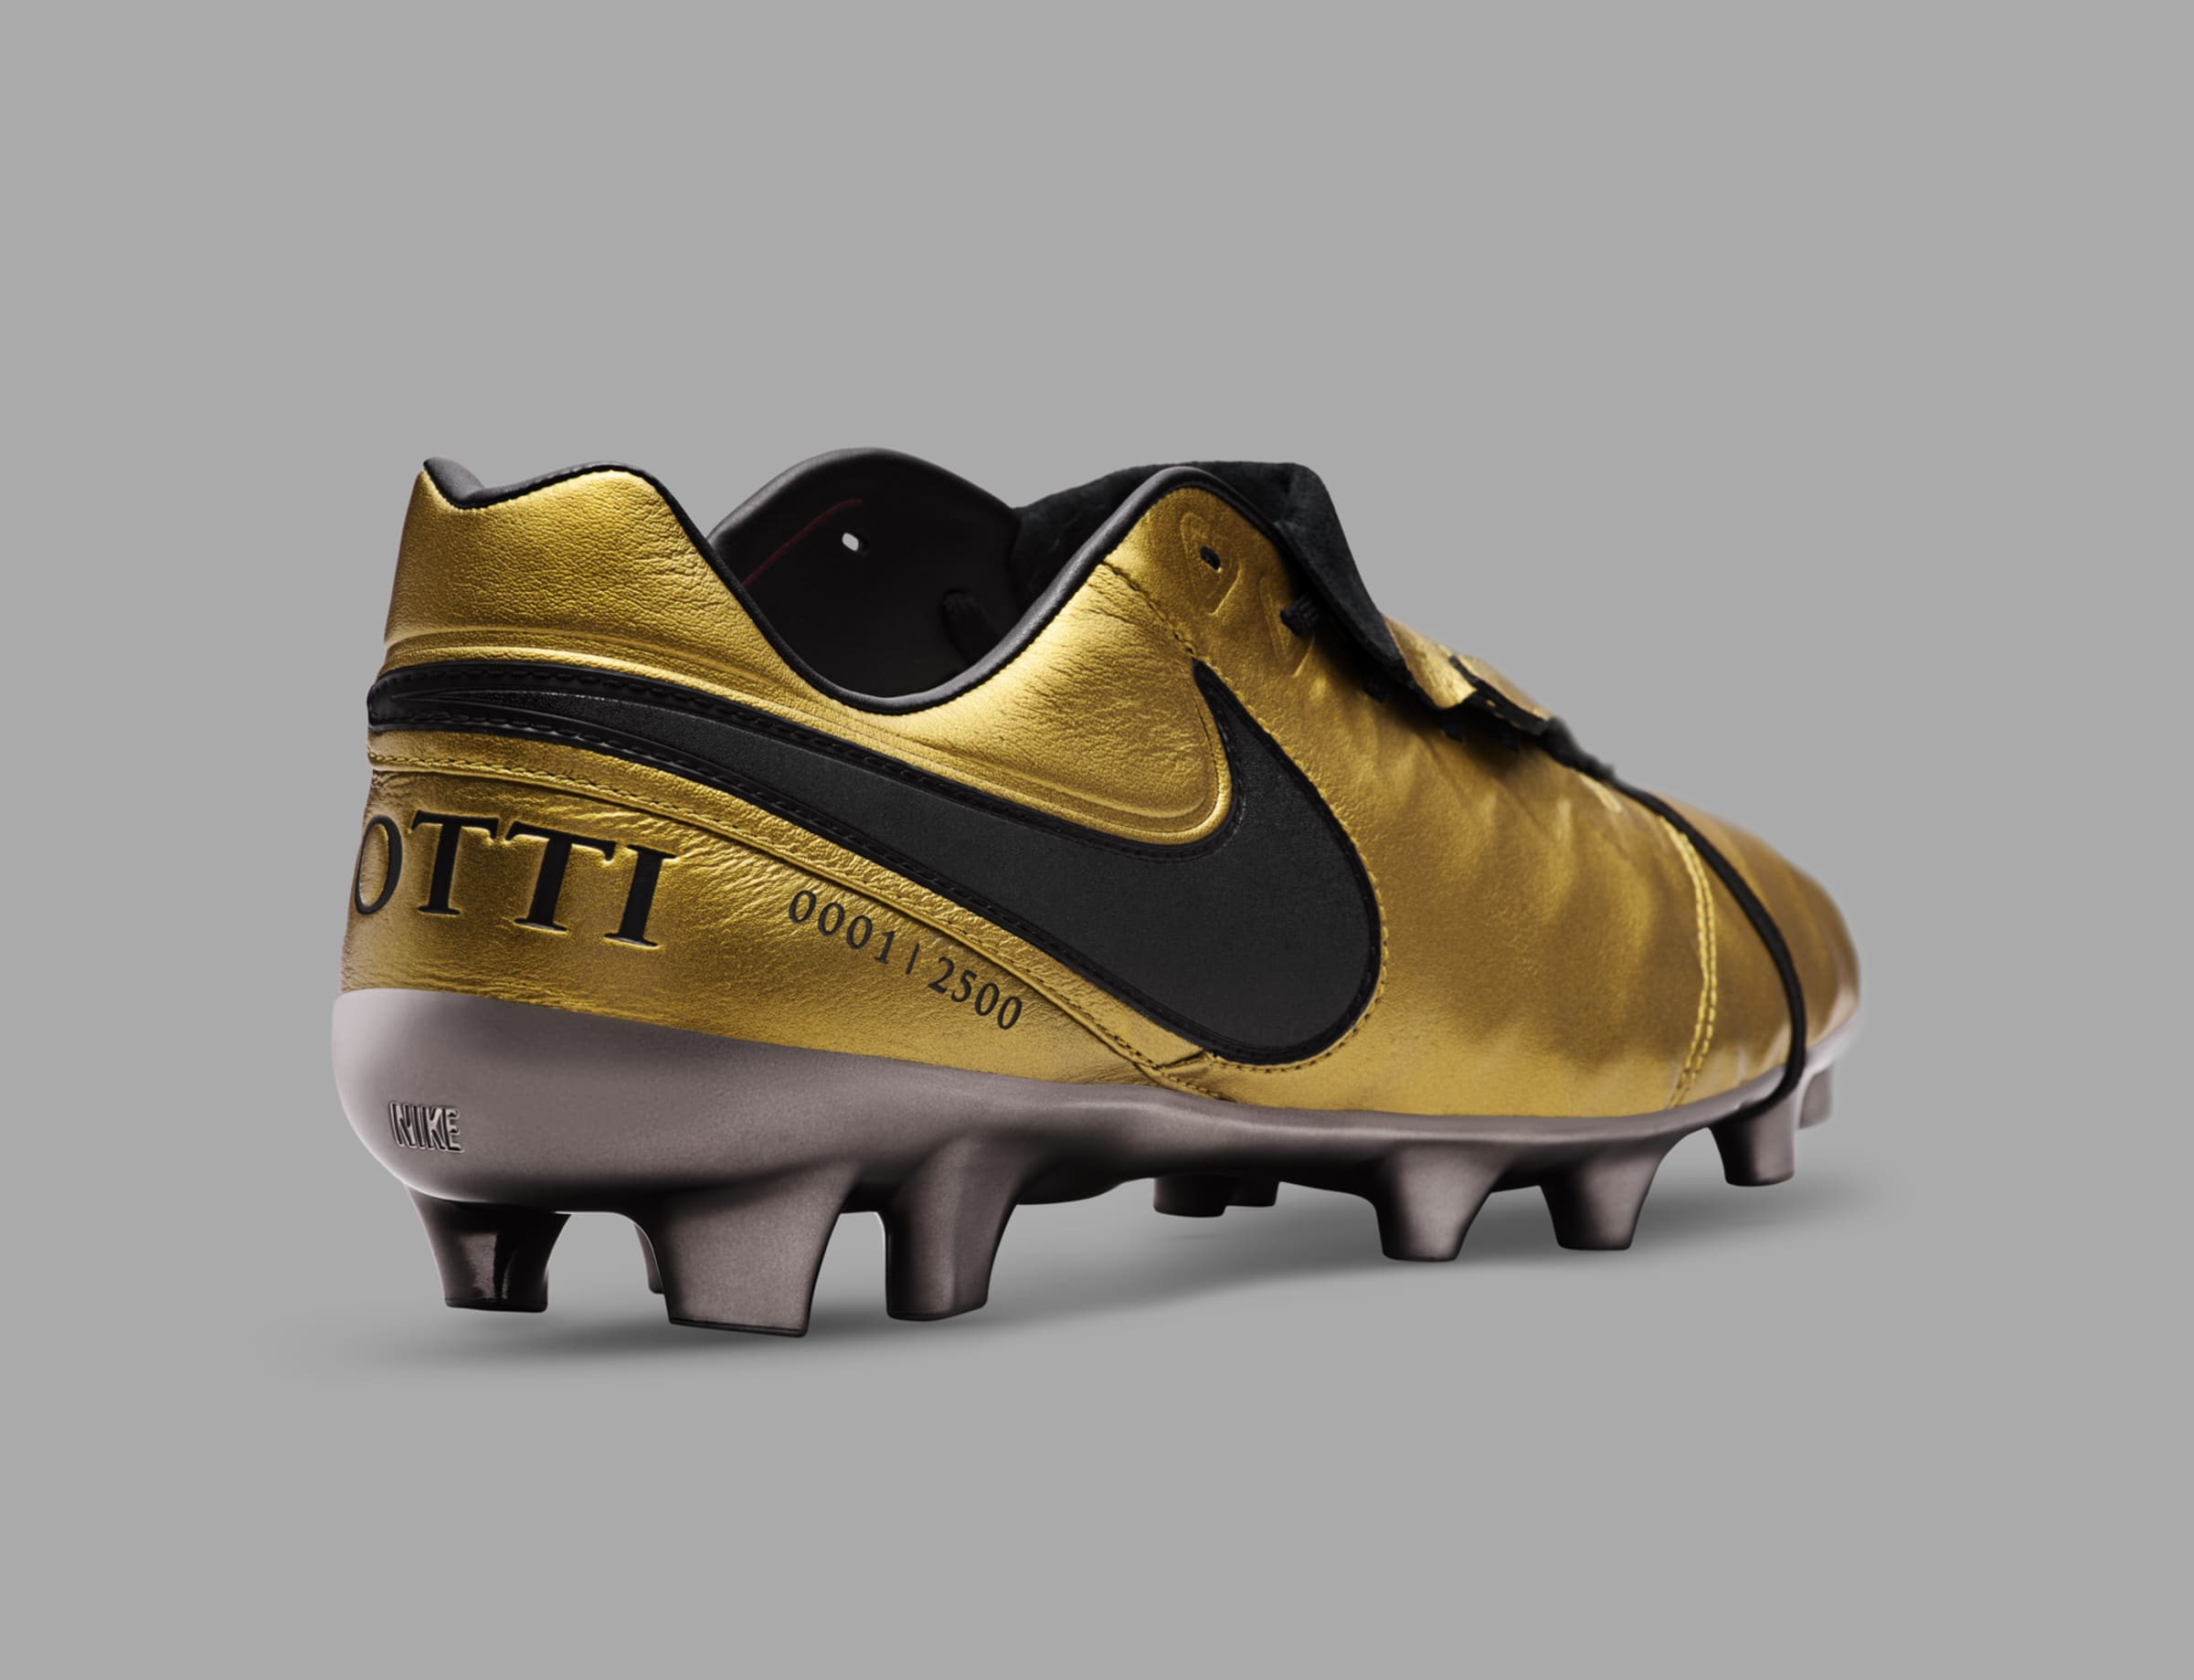 timeless design 96557 787d1 Nike unveil limited edition Tiempo Totti X Roma boot